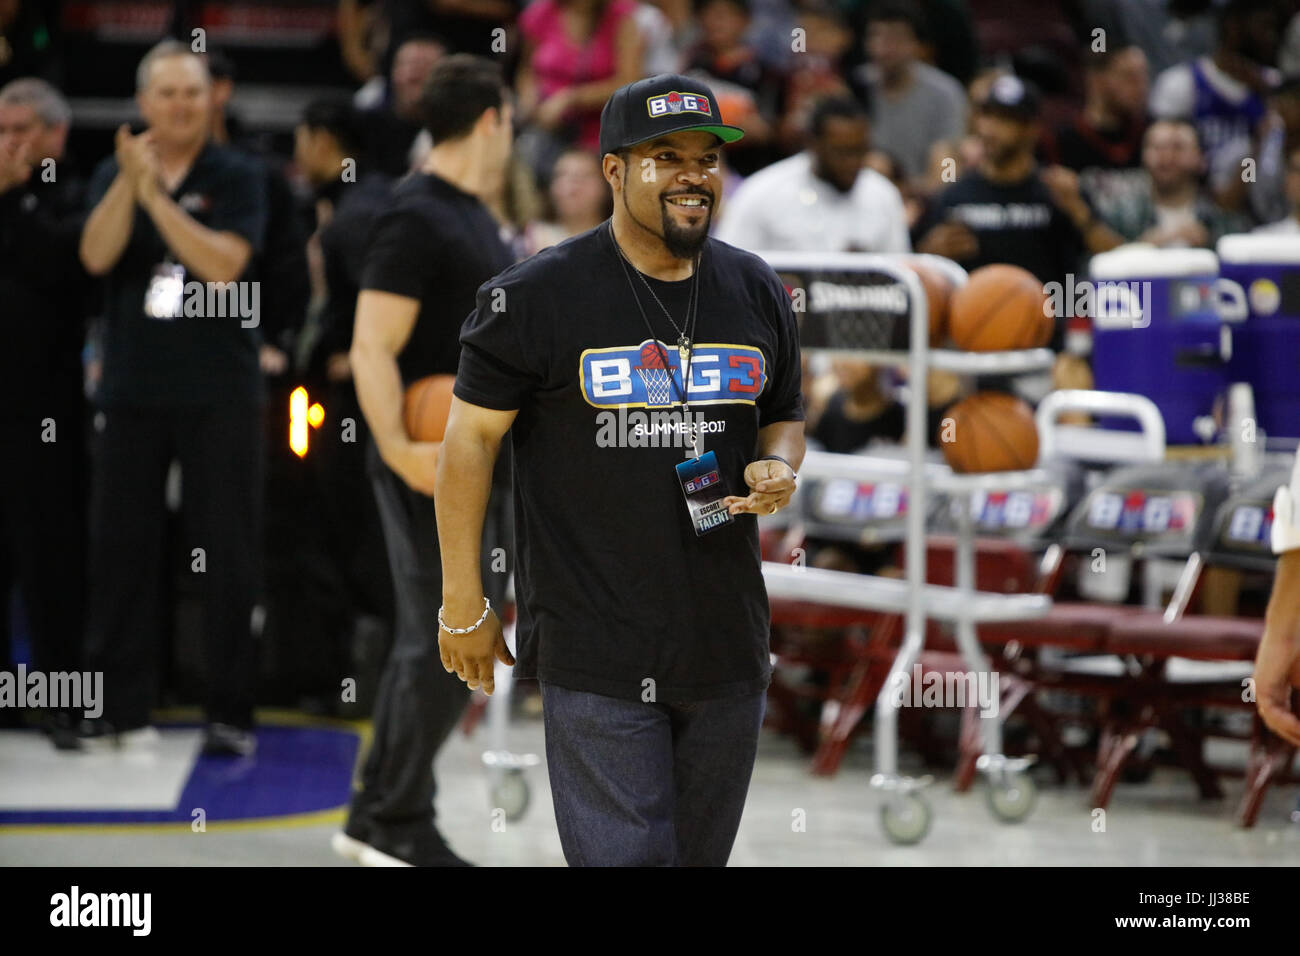 Ice Cube attend Big 3 league Phiily,PA 7/16/17 - Stock Image